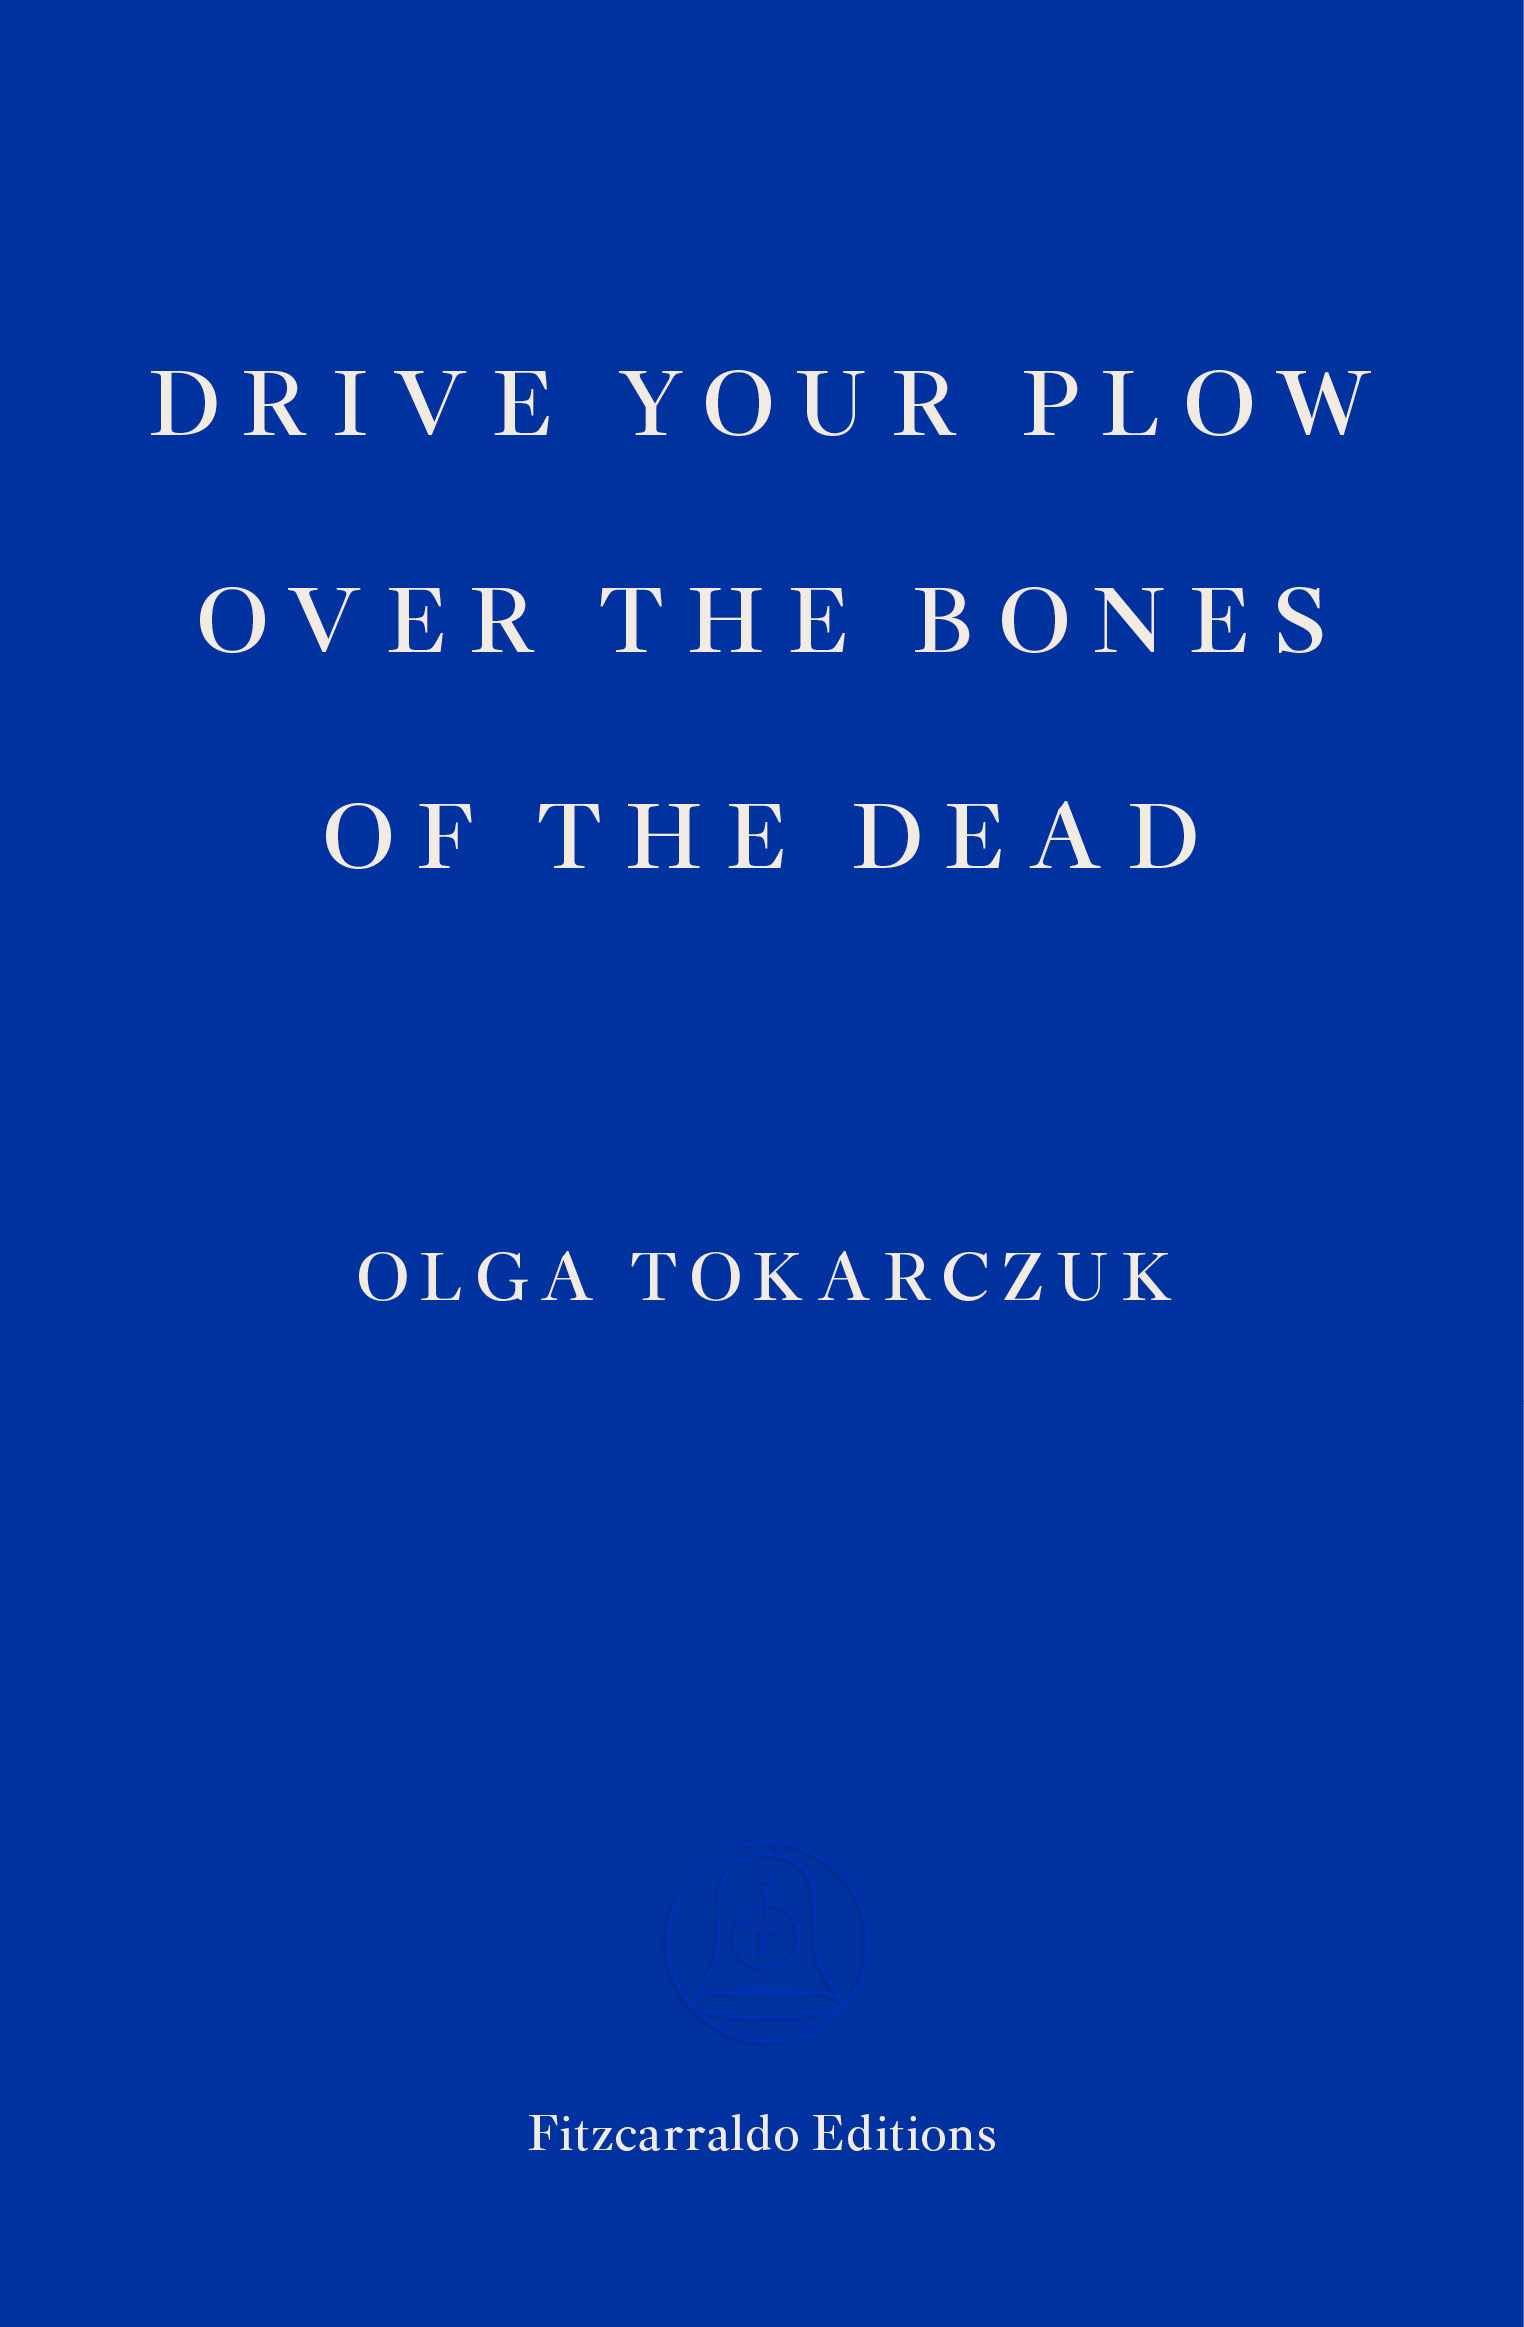 Olga tokarczuk   drive your plow over the bones of the dead